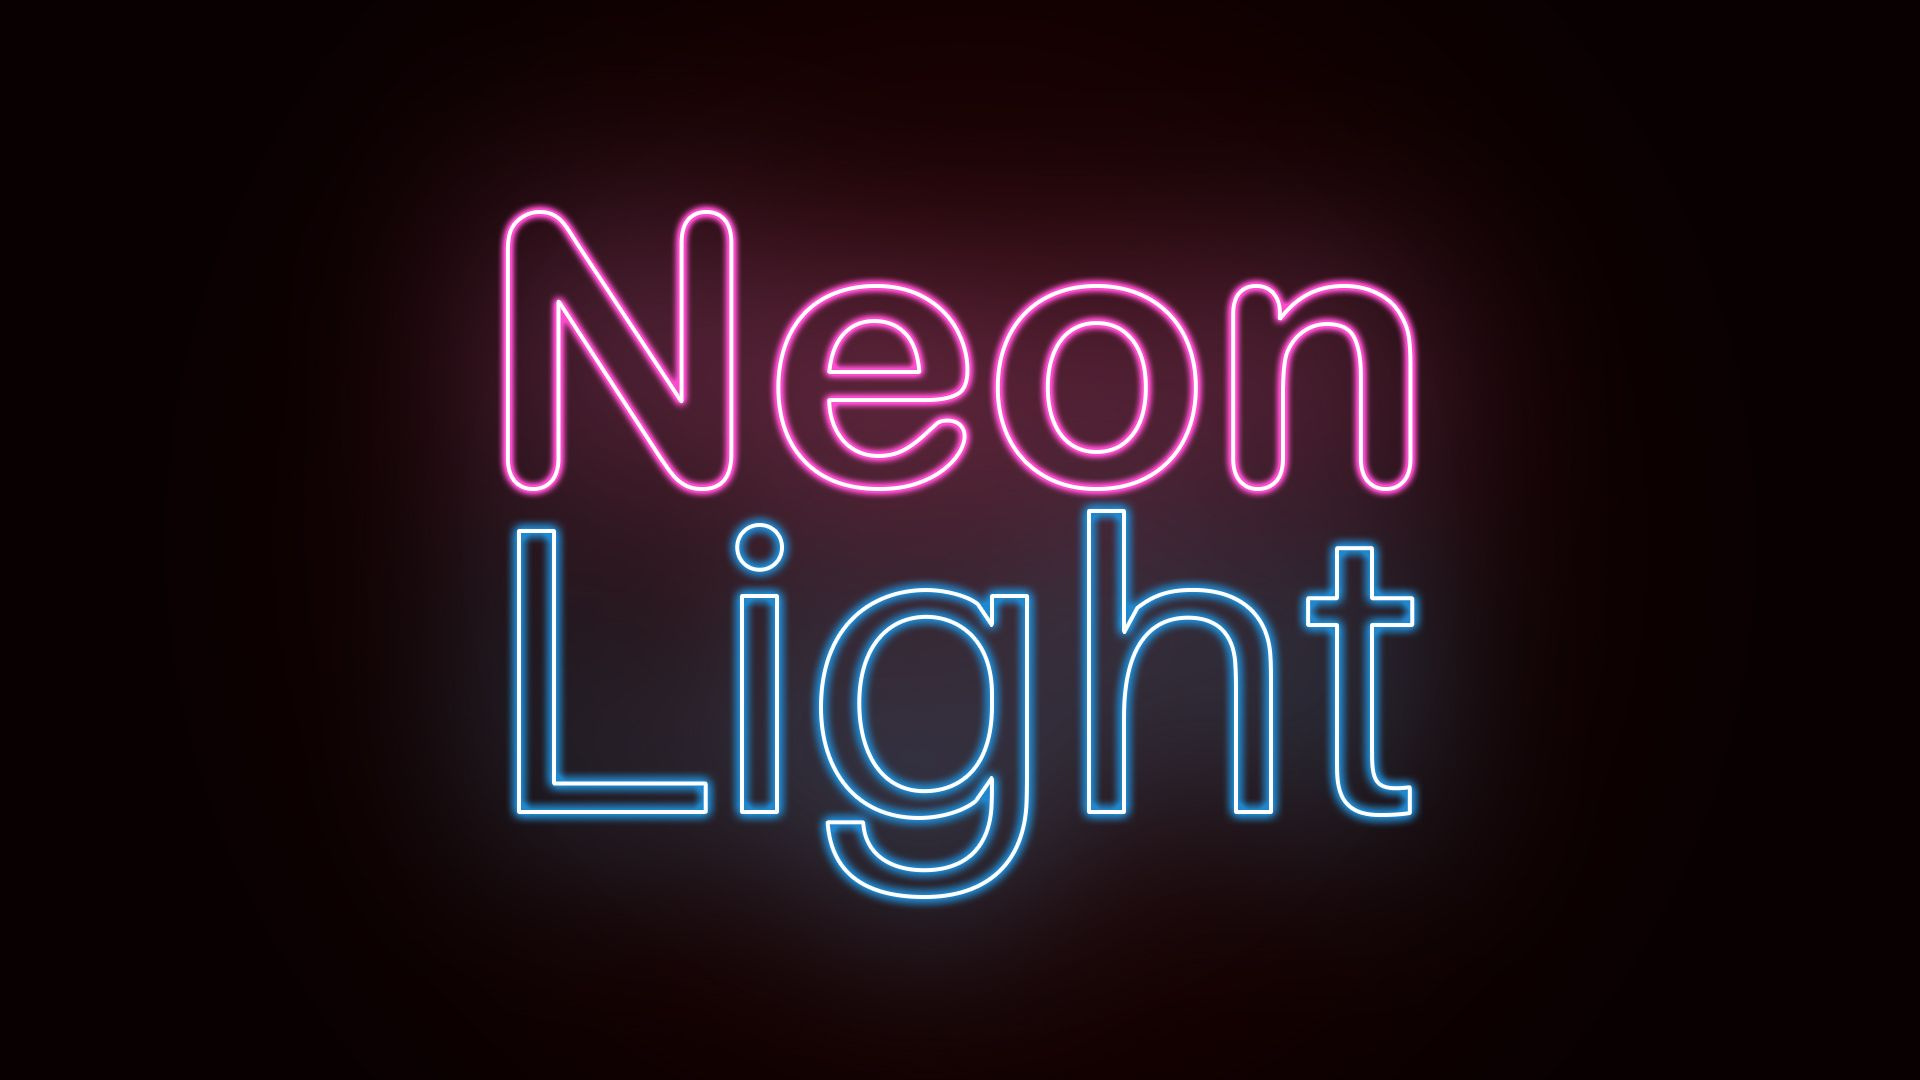 neon text effect photoshop